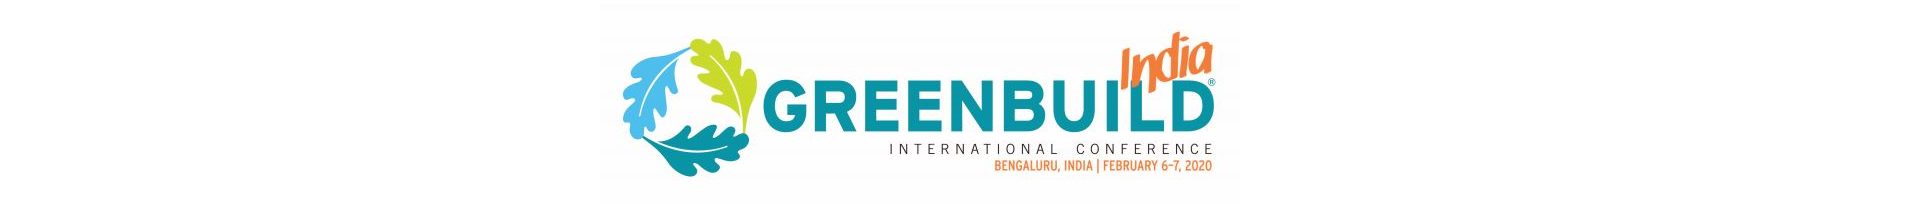 Greenbuild India 2020 Event Banner